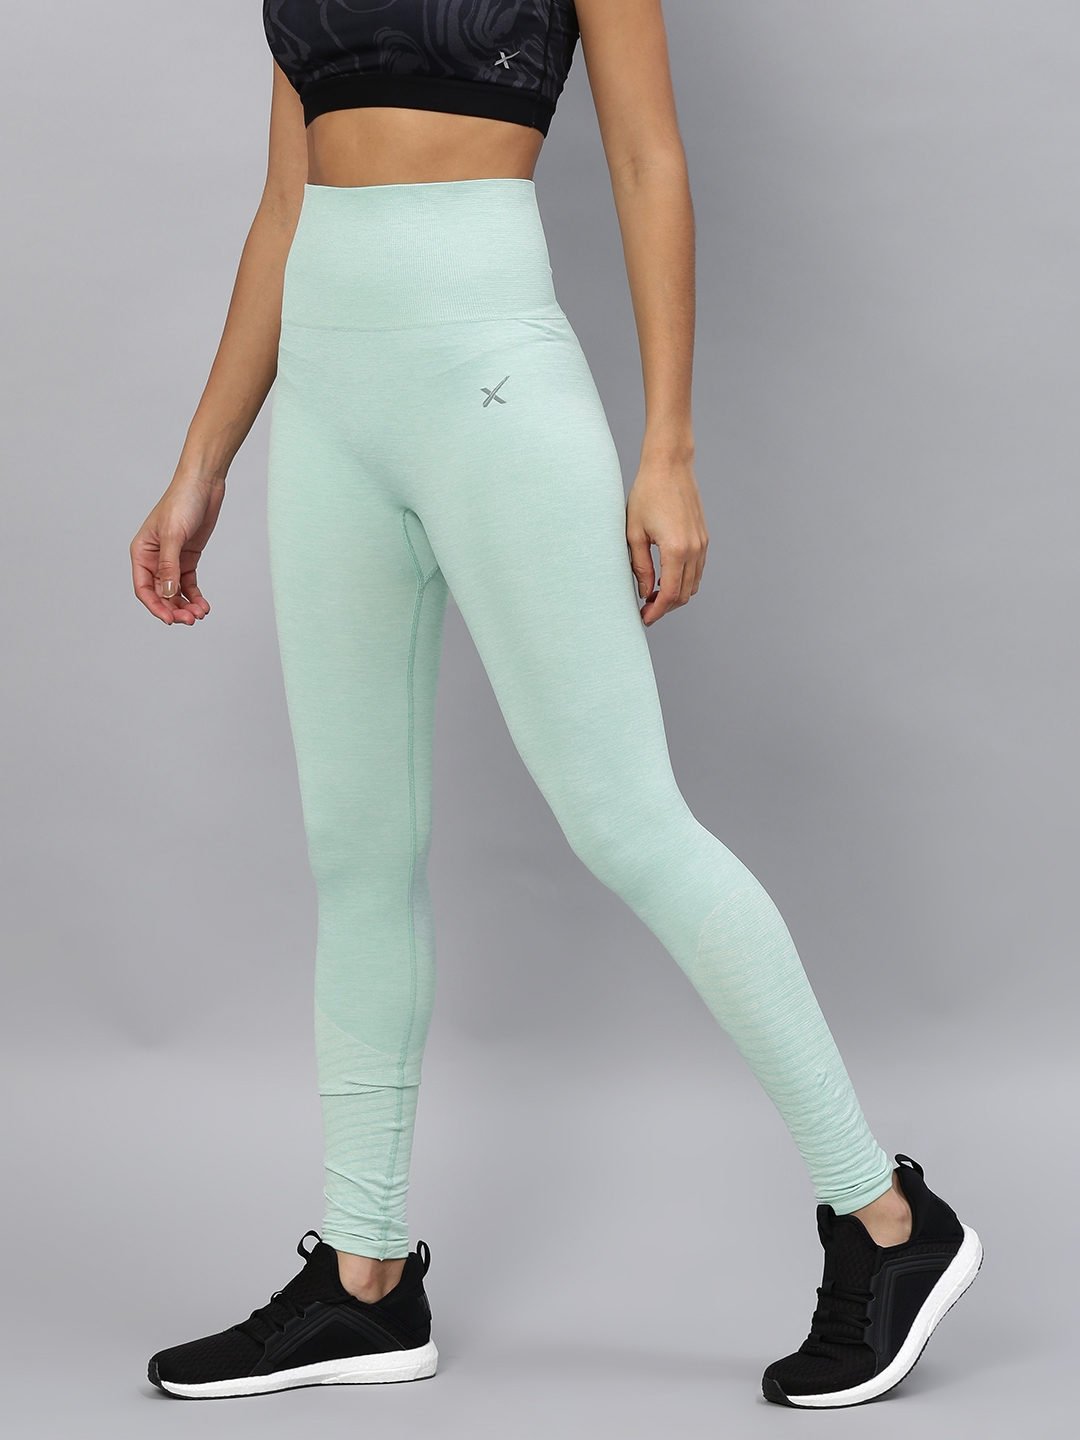 a816b92c0 Buy HRX By Hrithik Roshan Green Tights - Tights for Women 2131409 ...